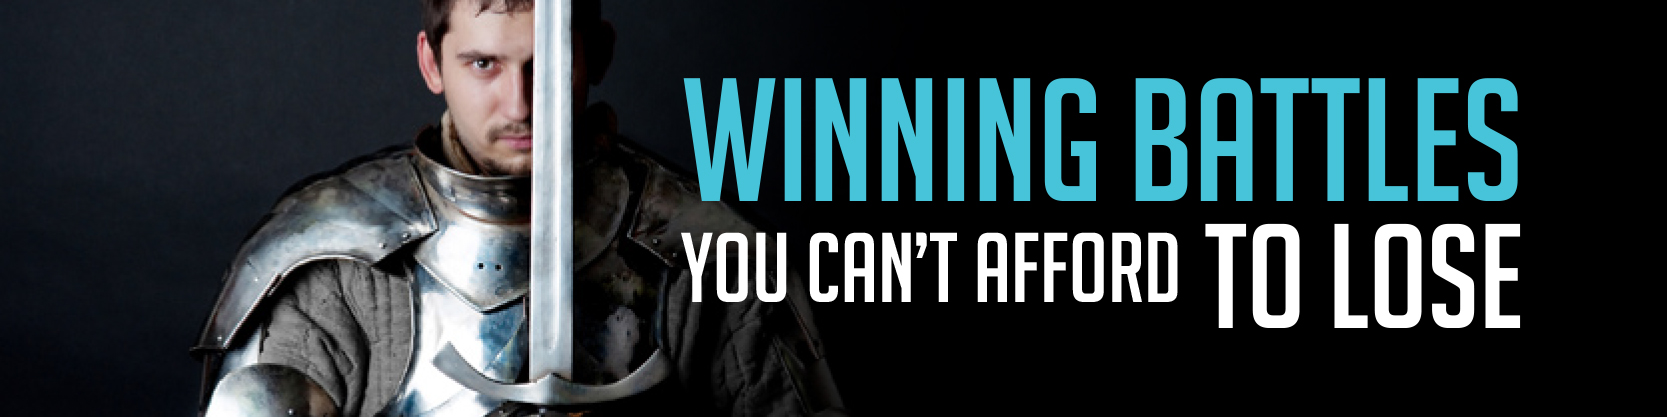 Winning Battles You Can't Afford To Lose